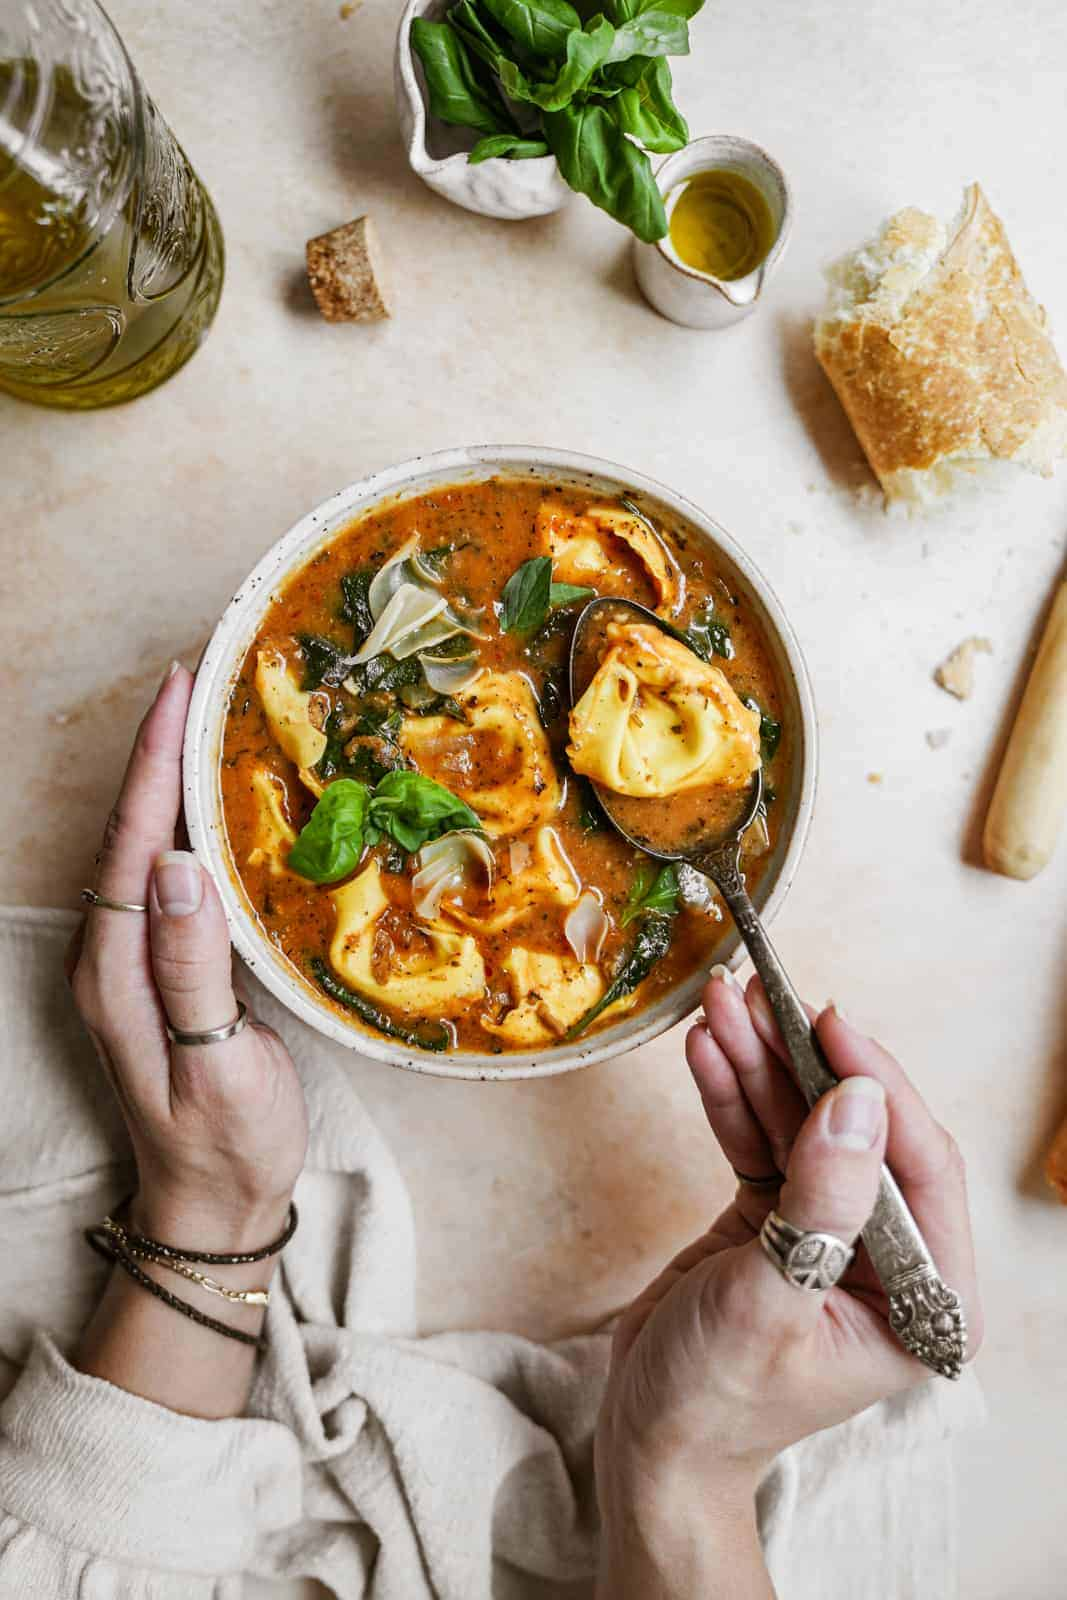 Hands holding bowl of vegan tortellini soup on countertop